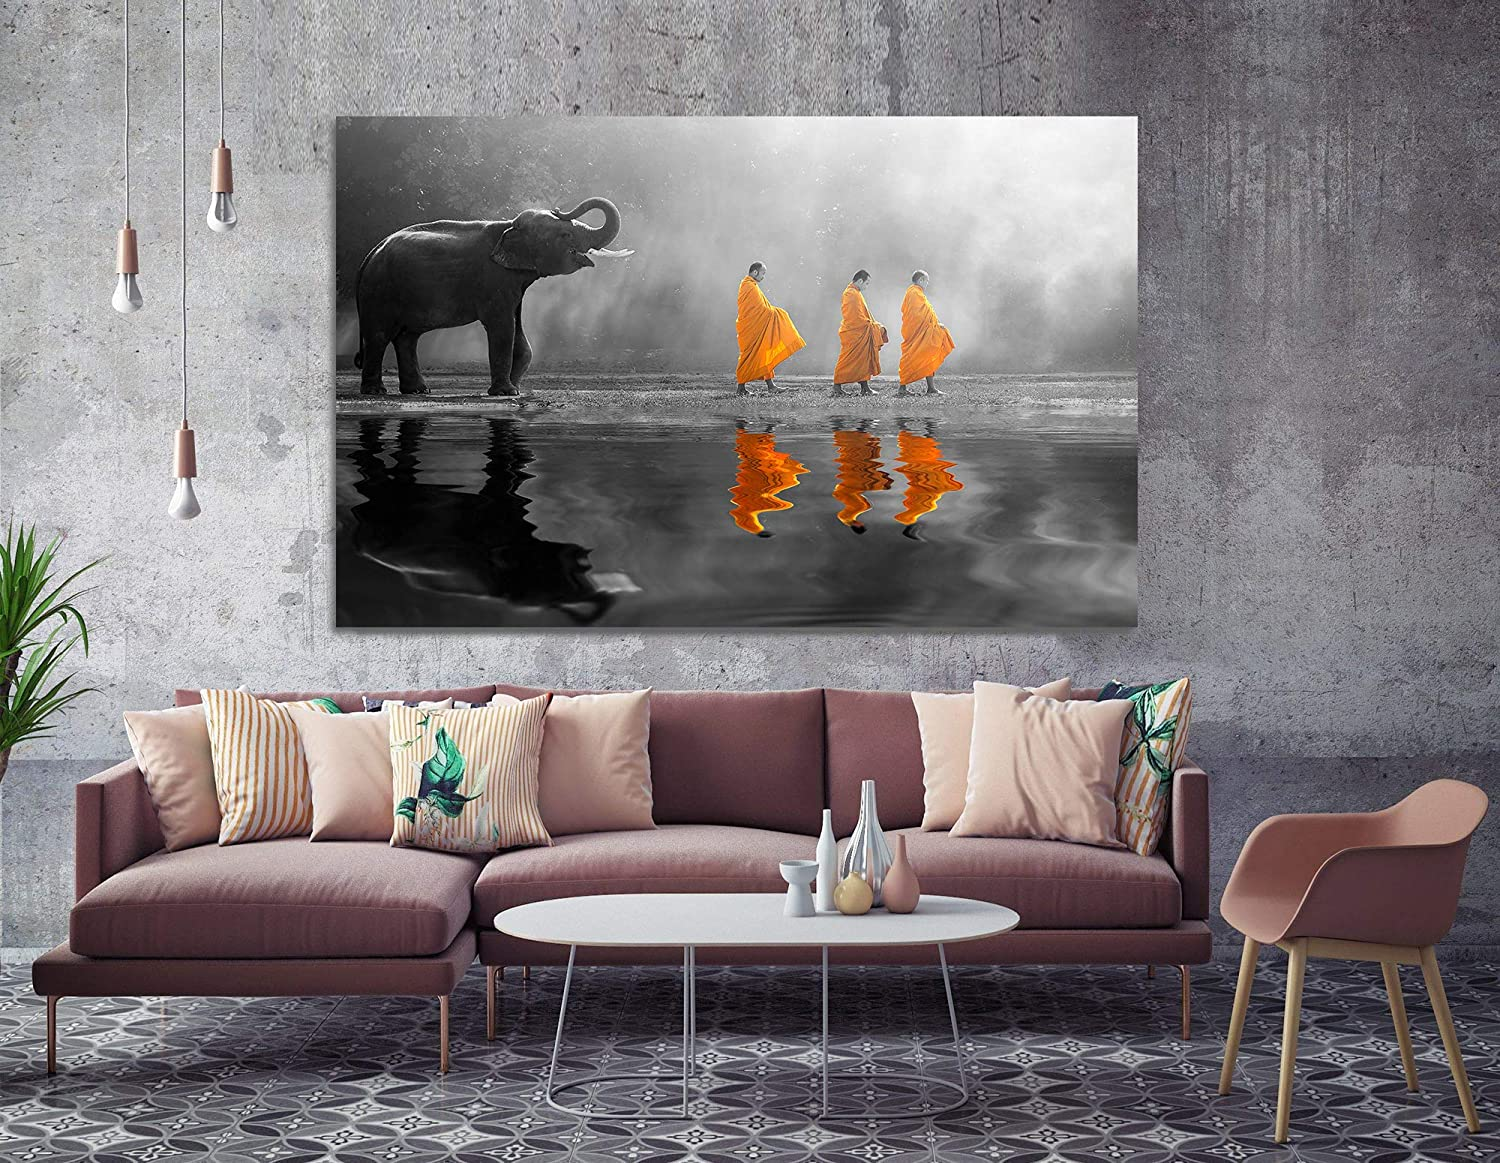 awesome Zen Wall Art Part - 4: Orlco art HD Print Thailand Elephant Walk Behind Monks Buddha Zen Wall Art  with Frame Picture Canvas Prints for Study or Office Zen Wall Decor  Paintings ...